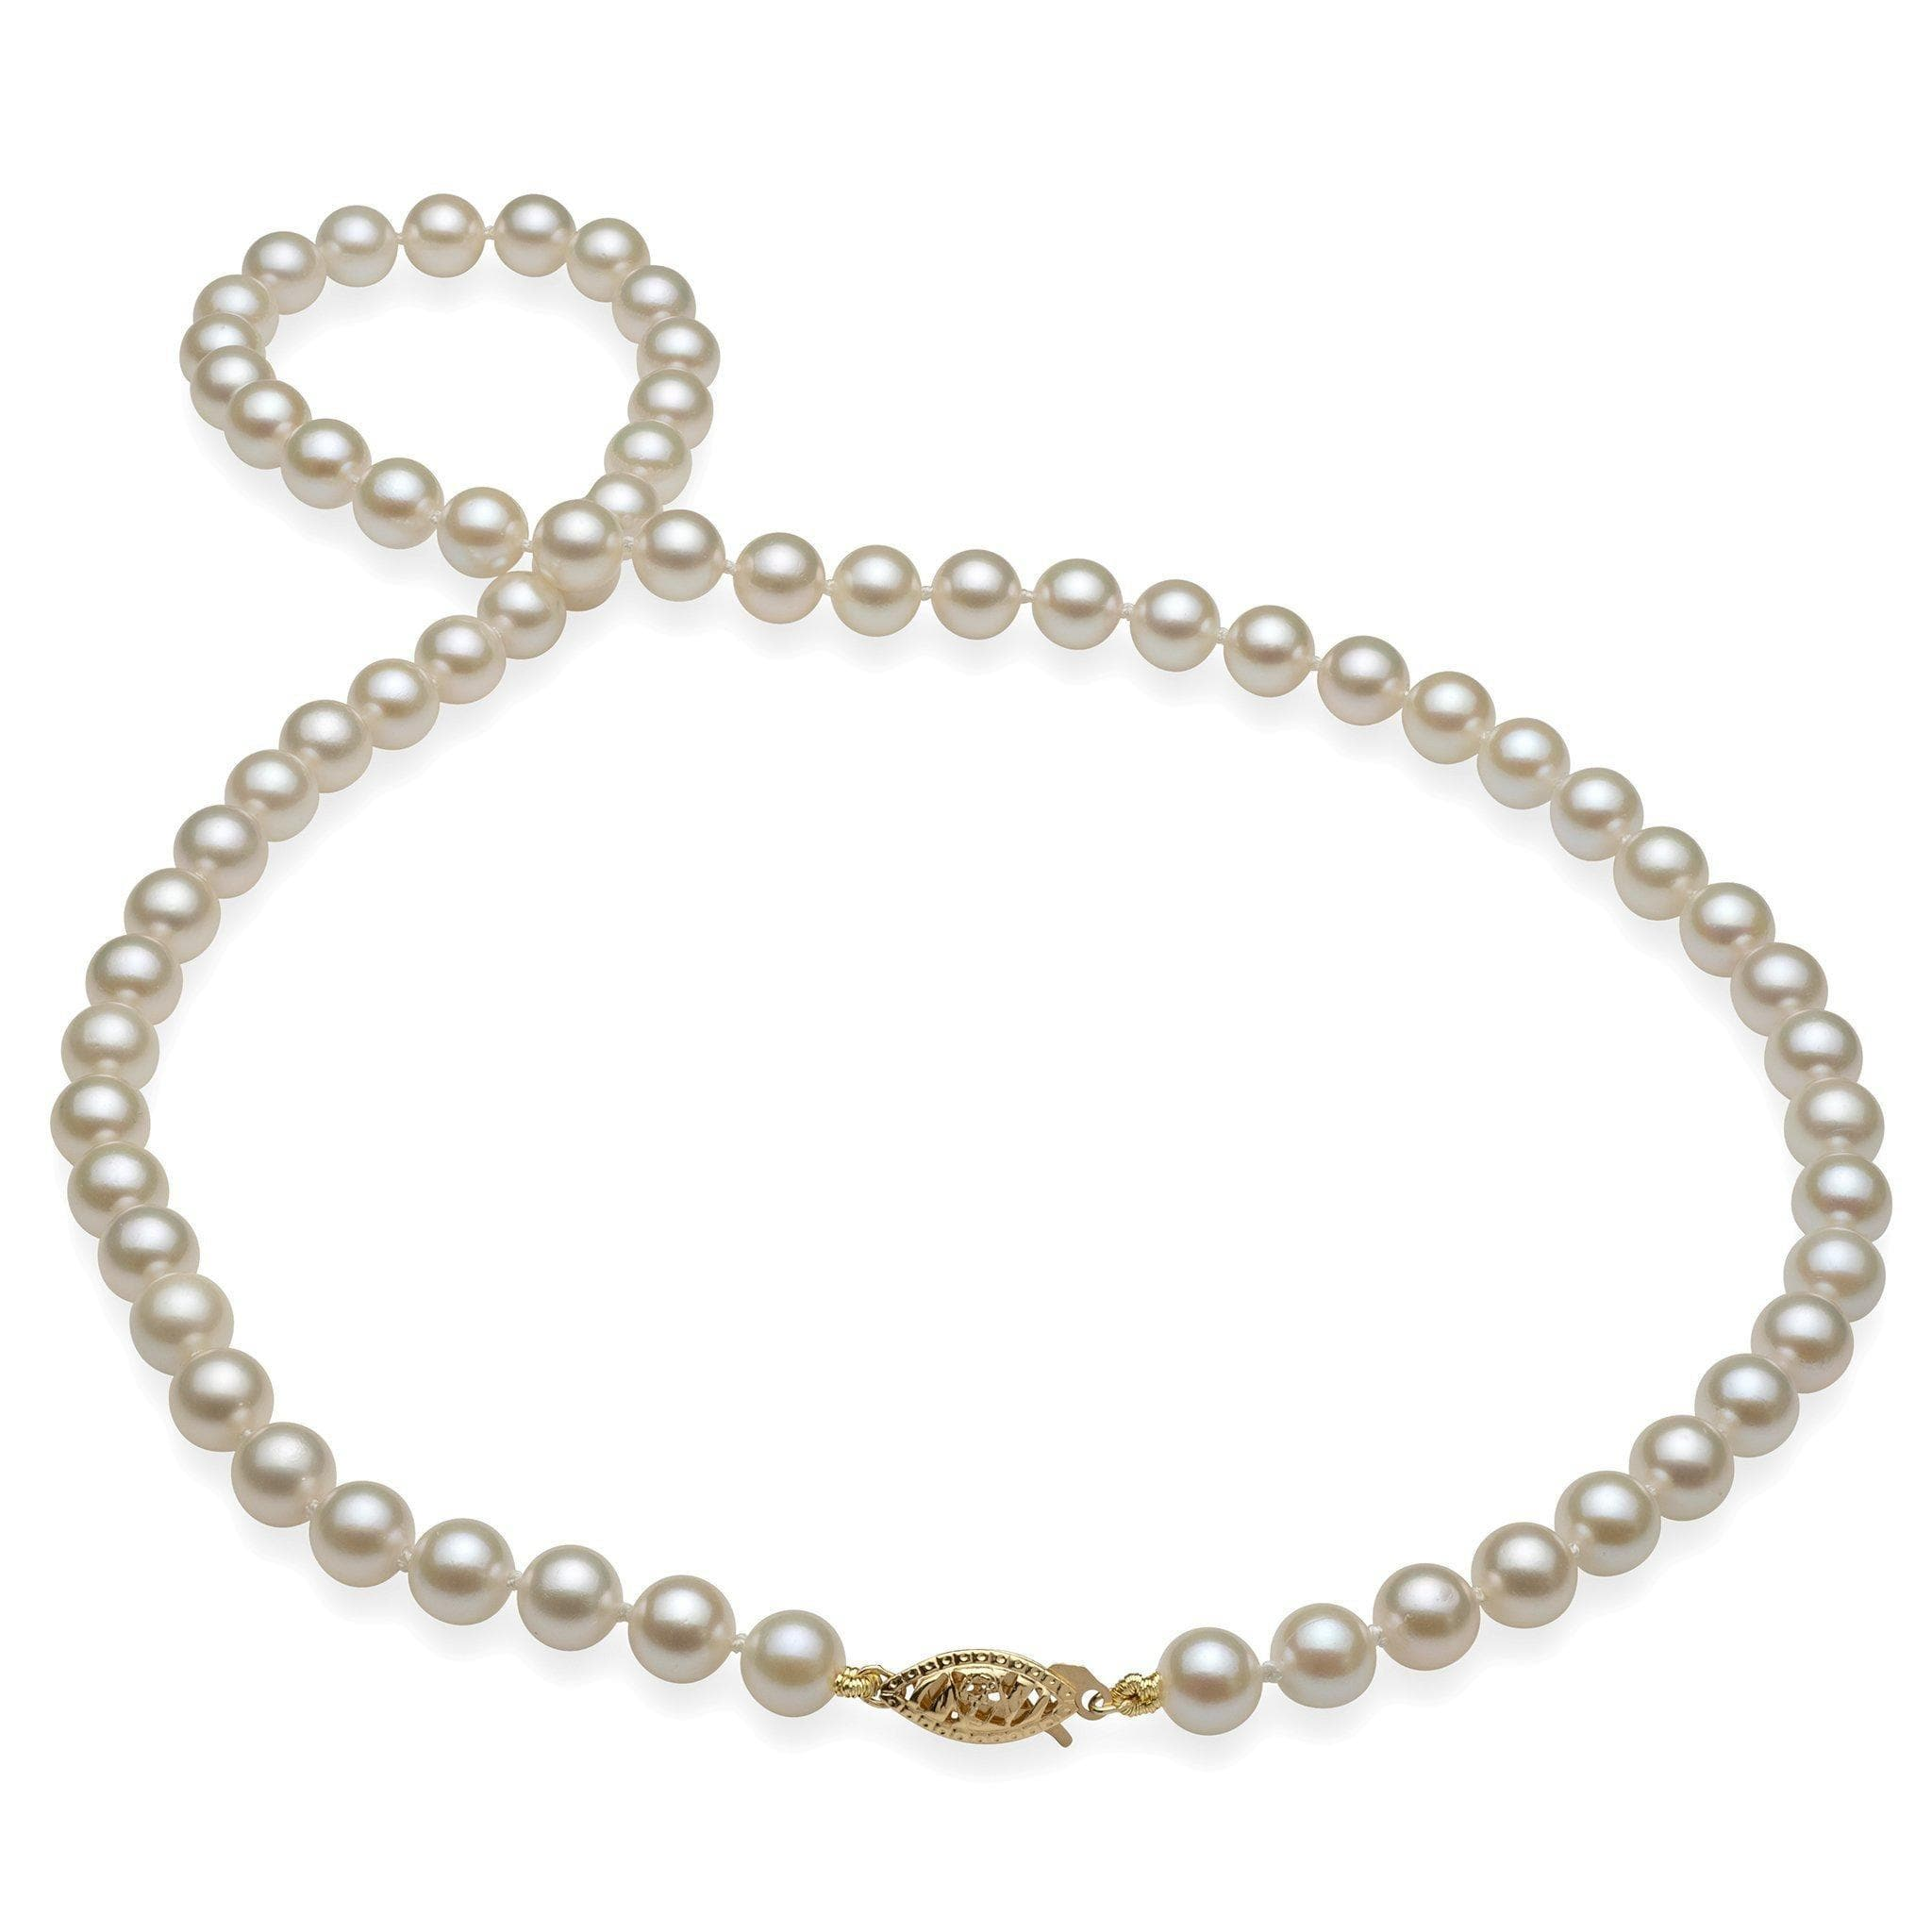 ef492253090f0 Shop Real Pearl Strand Necklaces Tagged